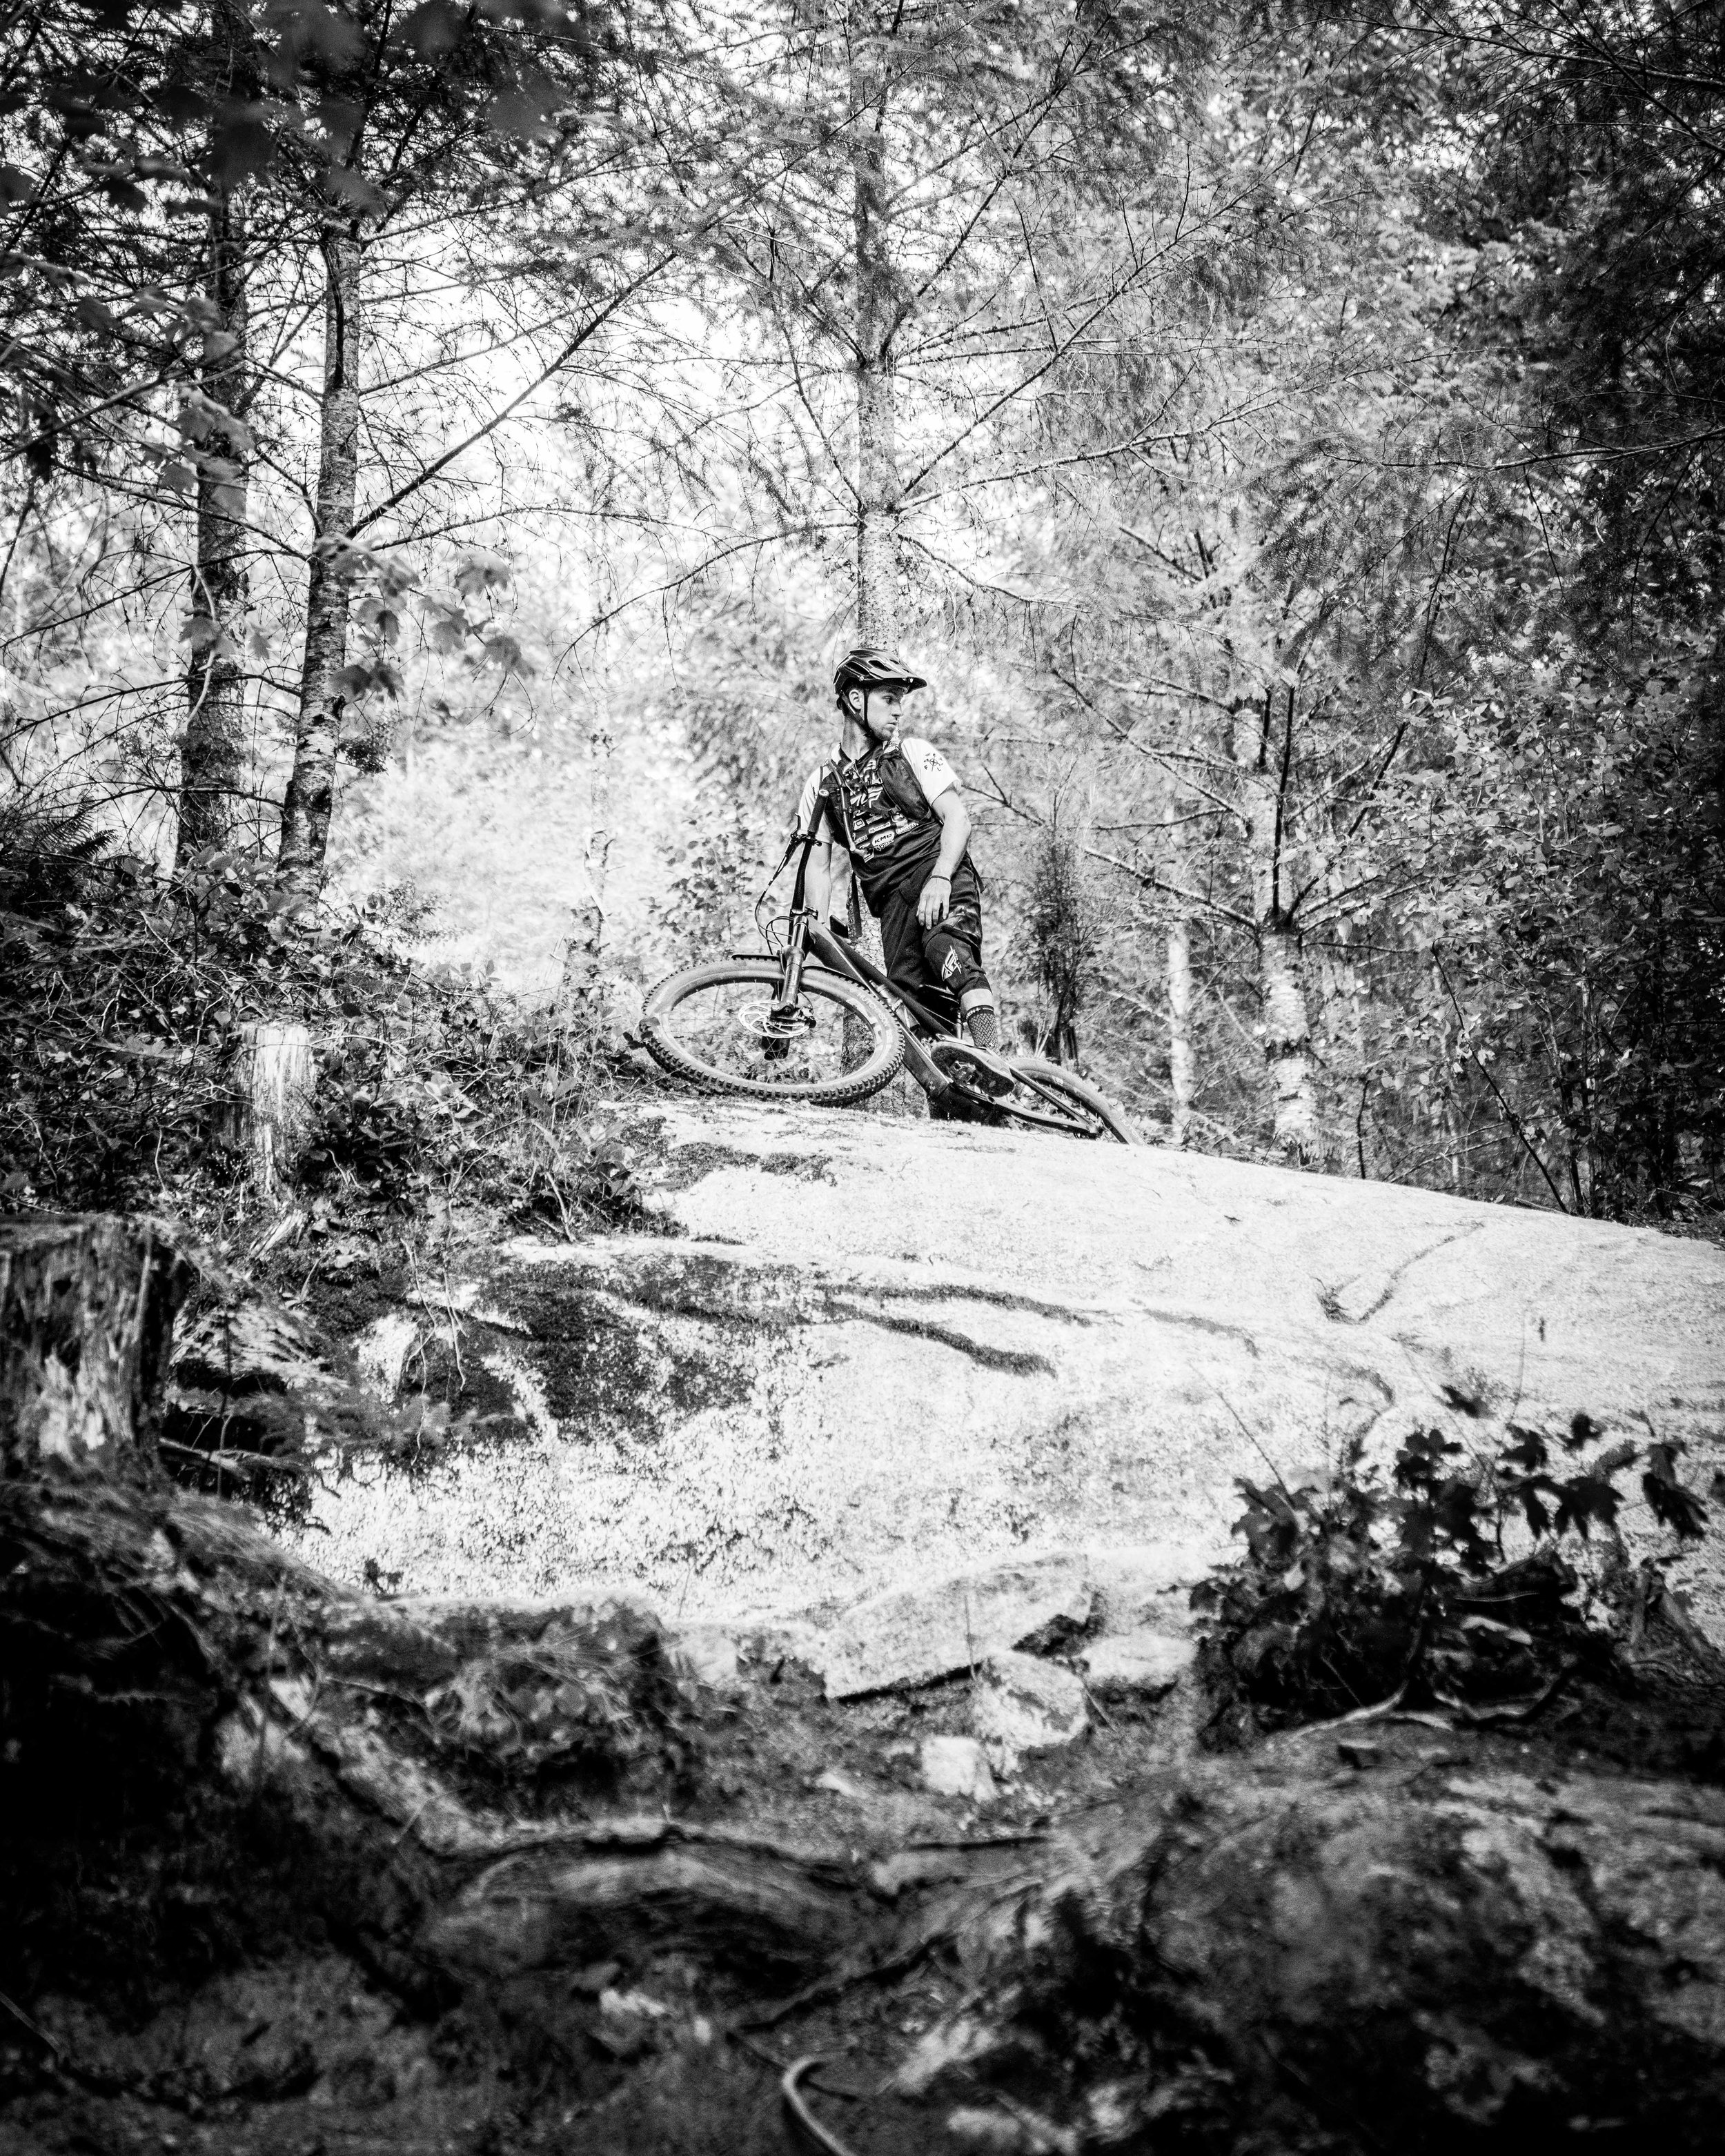 chasewhite-remymetailler-squamish-84.jpg